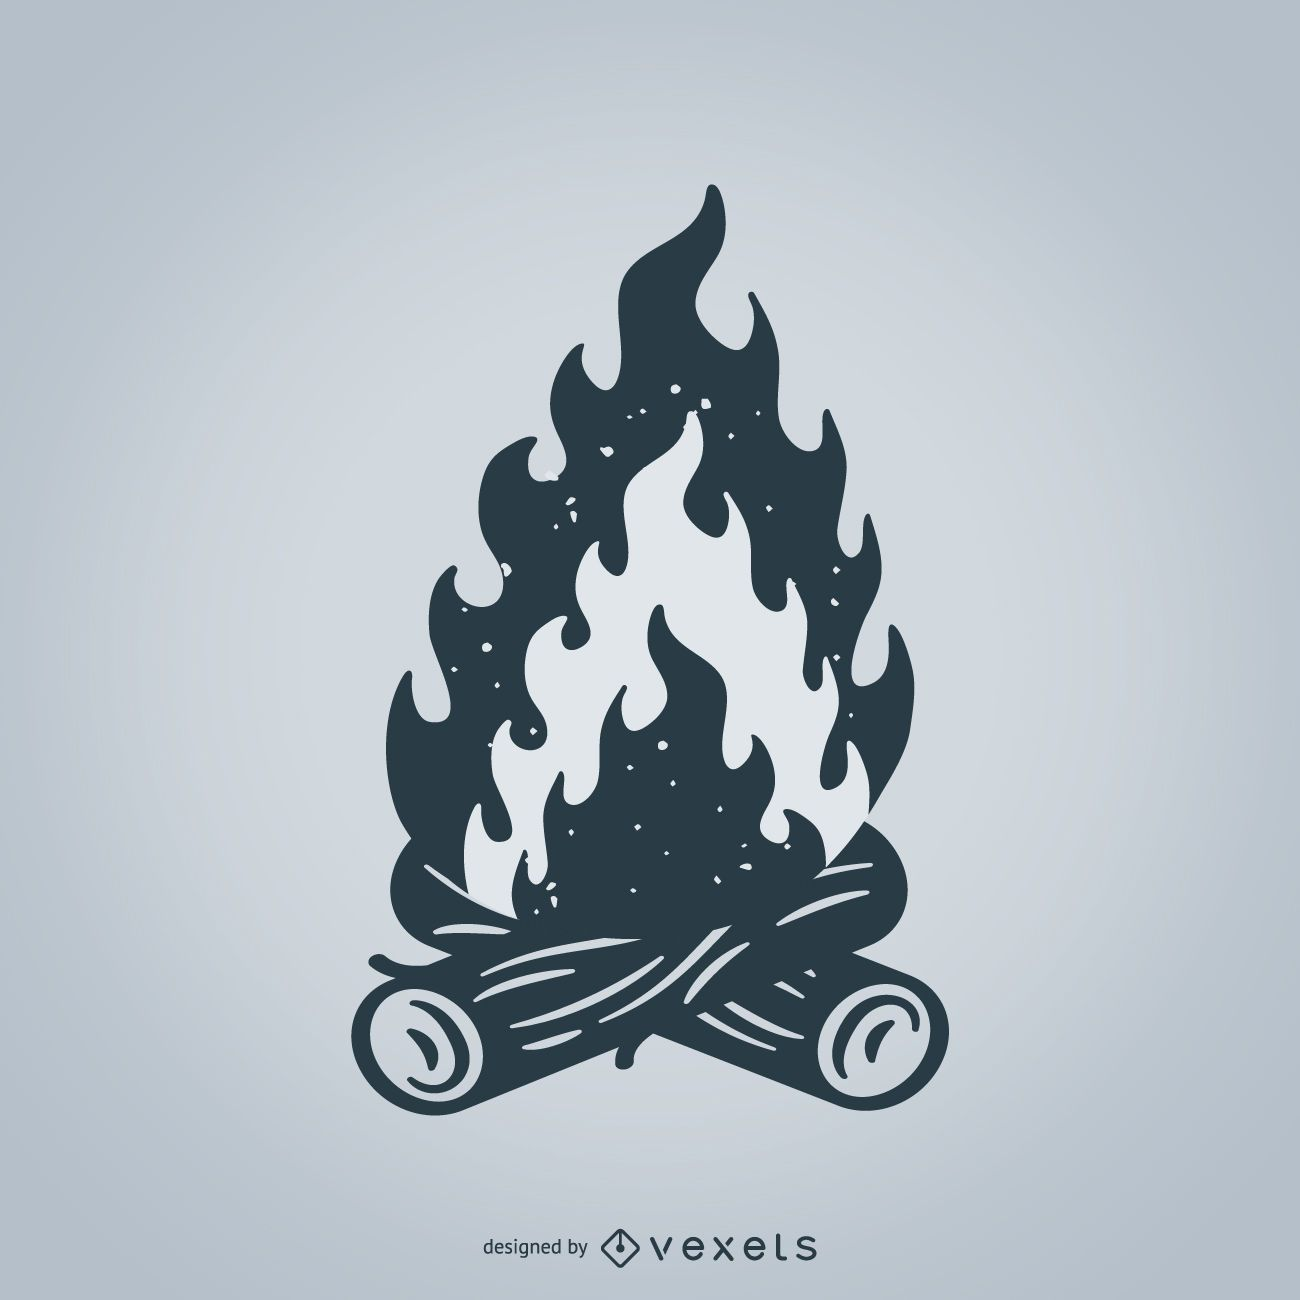 Isolated campfire illustration - Vector download